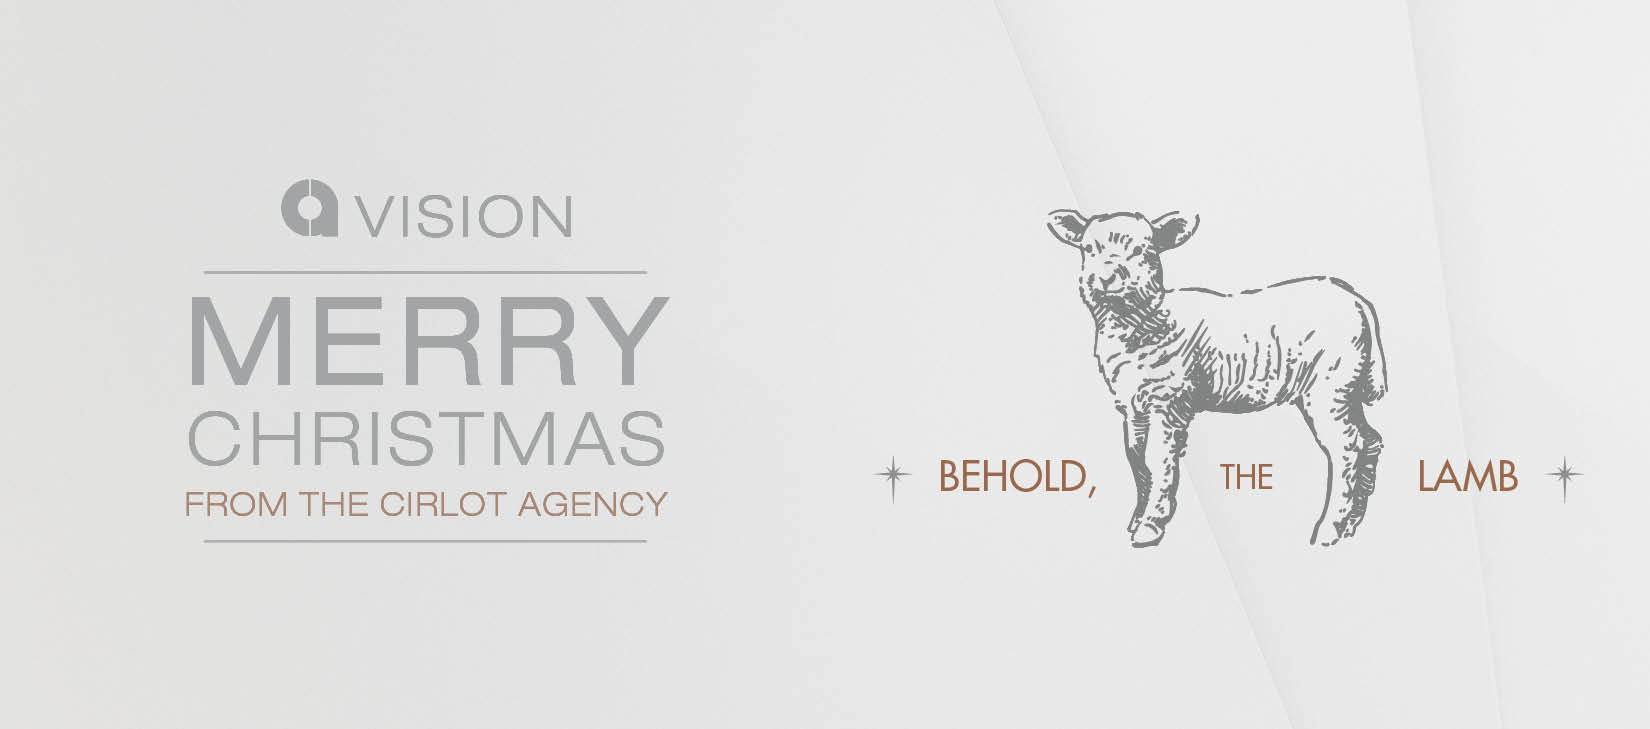 Merry Christmas from The Cirlot Agency - The Cirlot Agency